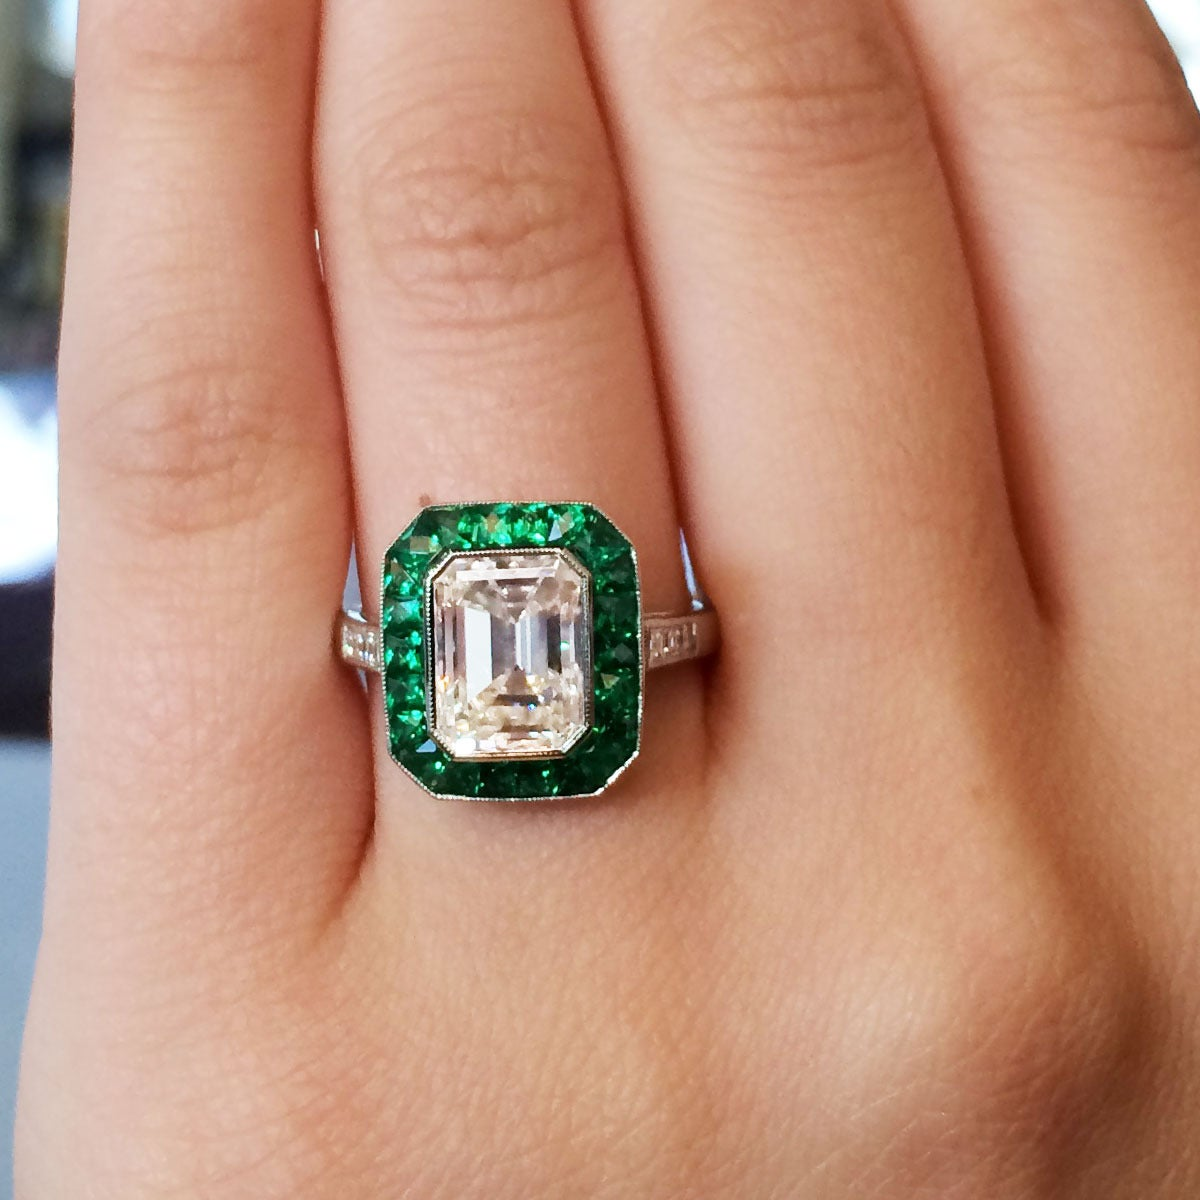 2 51 Carat Emerald Cut Diamond Emerald Halo Platinum Engagement Ring at 1stdibs